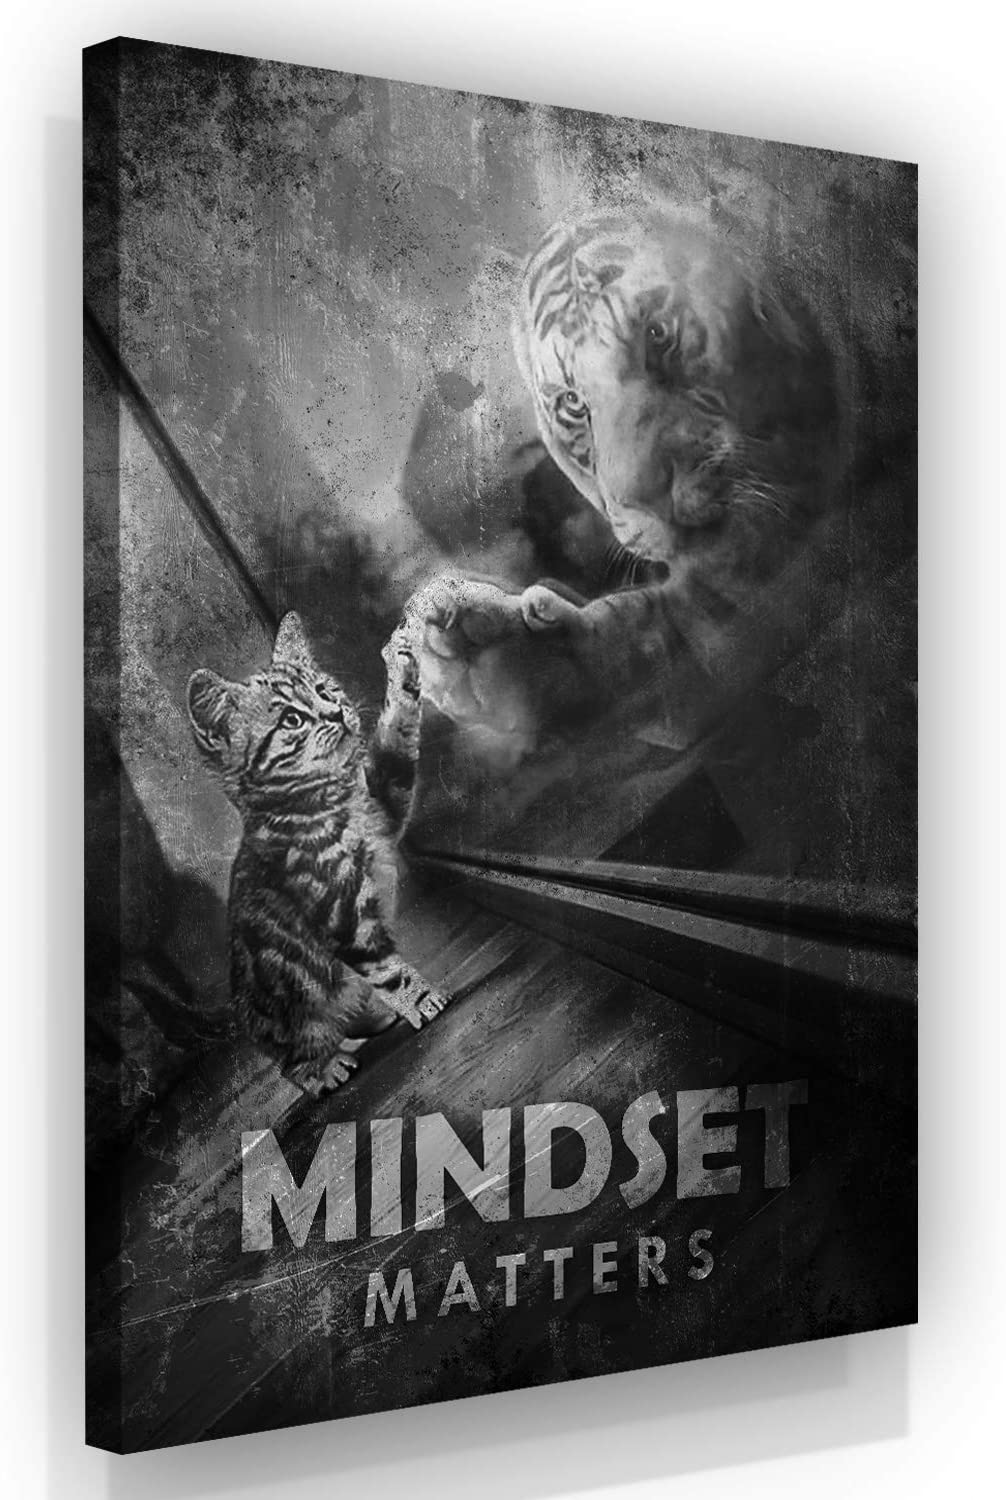 Motivational Wall Art Mindset Is Everything Canvas Print, Office Decor, Inspiring Framed Prints, Inspirational Entrepreneur Quotes for Wall Art Decoration, Tiger Sign (18